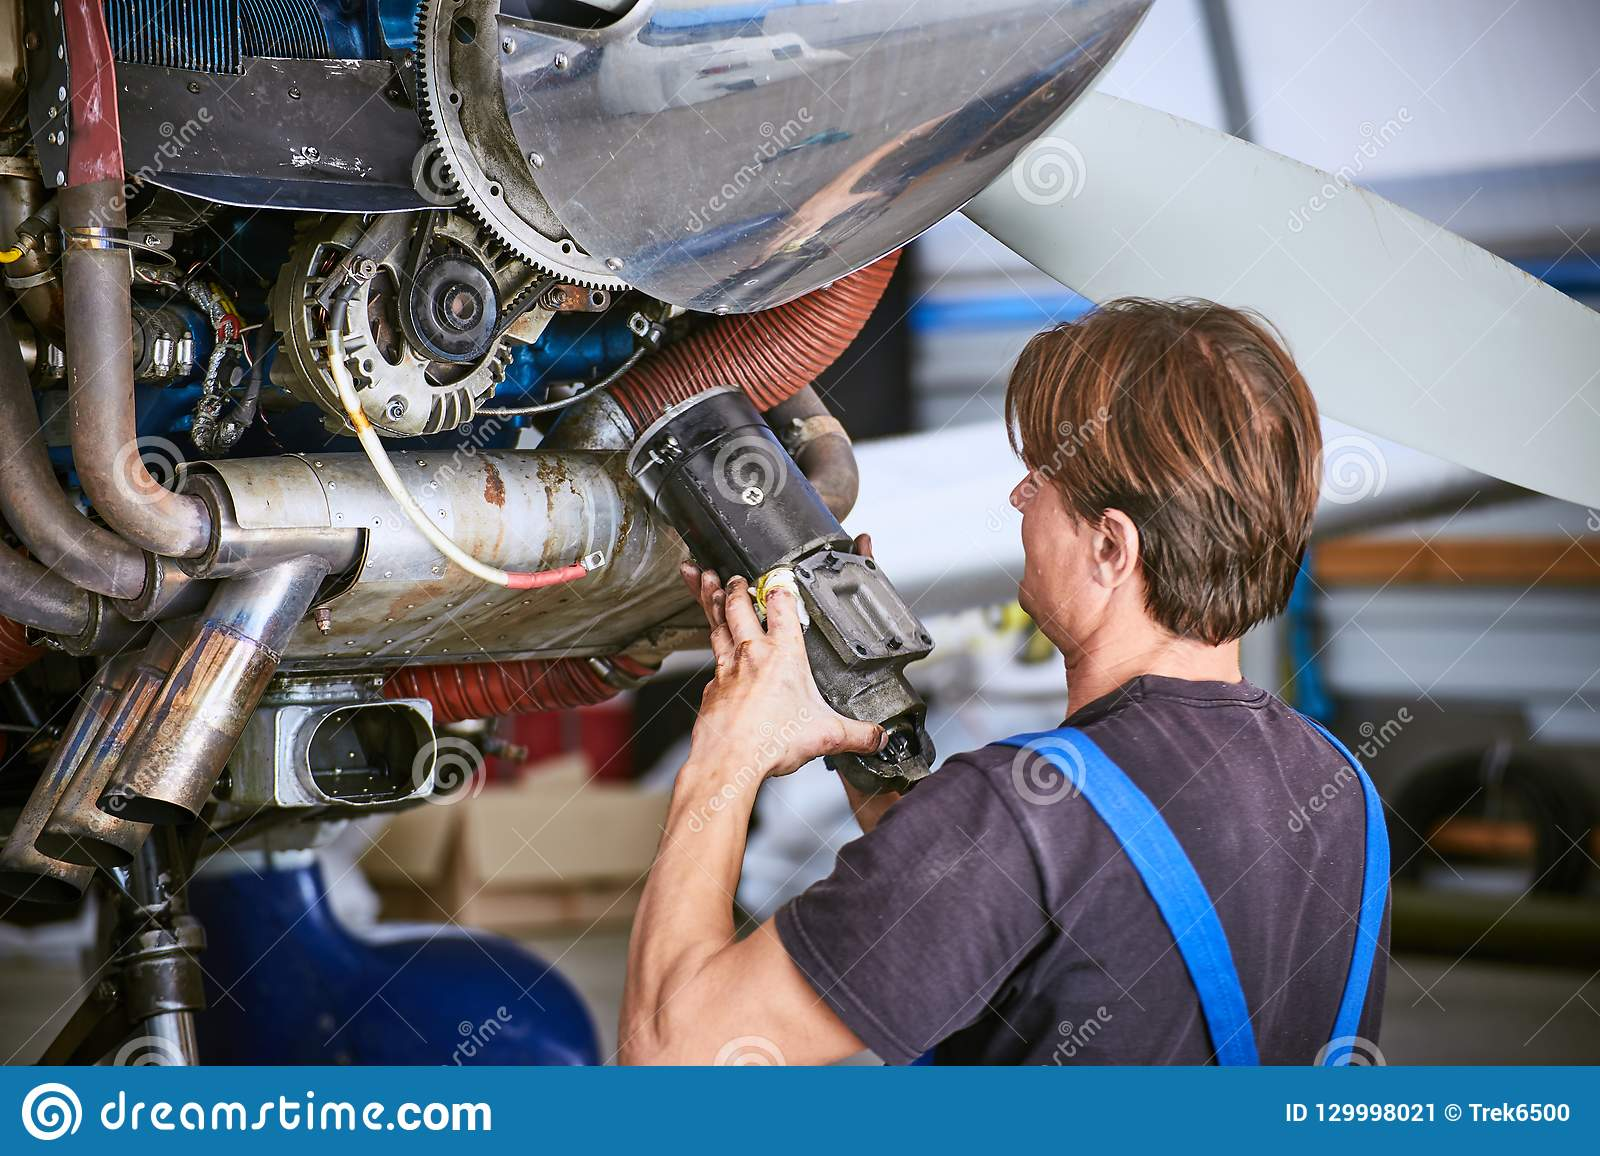 Replacing The Defective Parts Of Aircraft Service Worker Stock An